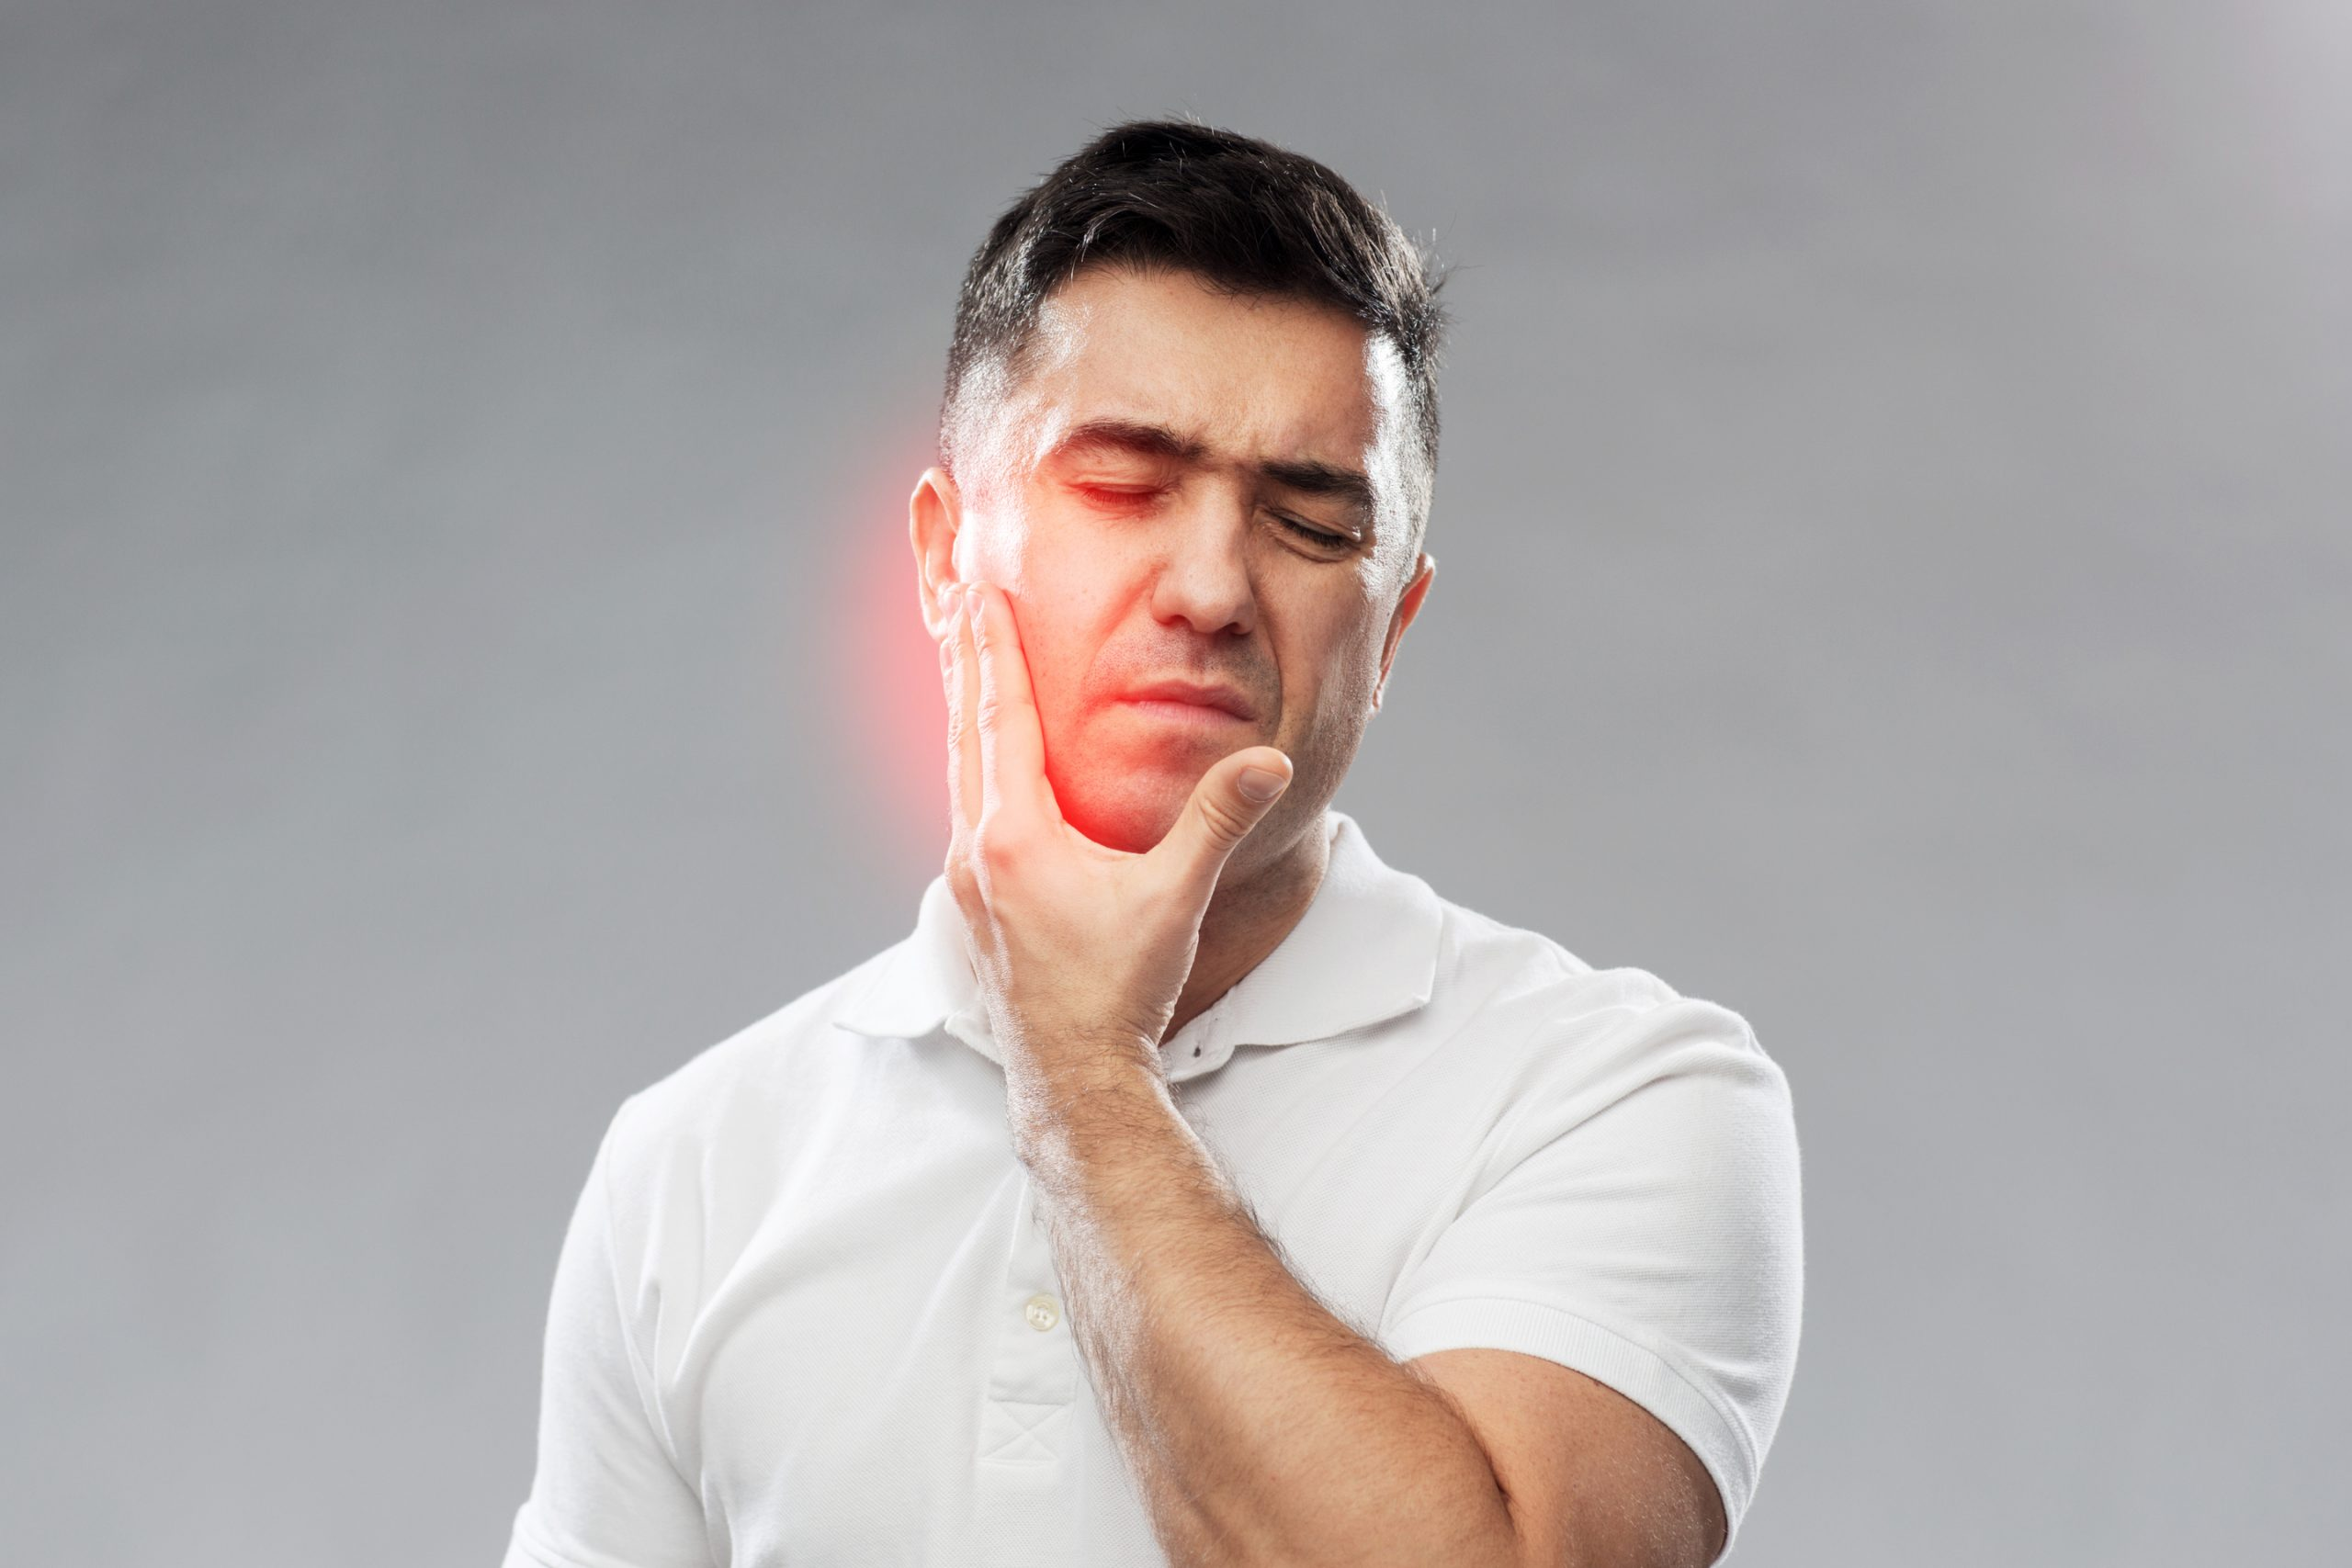 man holding jaw in pain to illustrate what does teeth grinding sound like